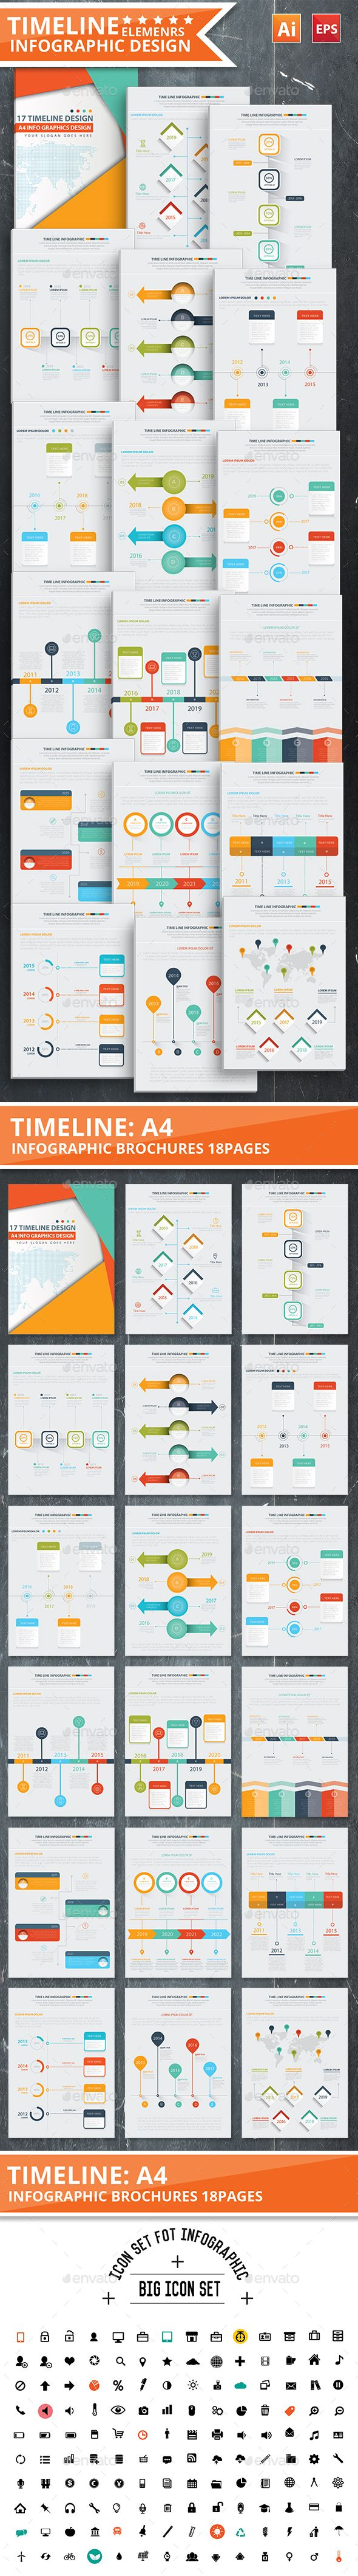 TimeLine Infographic Template Vector EPS, AI #design Download: http://graphicriver.net/item/timeline-infographic-design/13609609?ref=ksioks